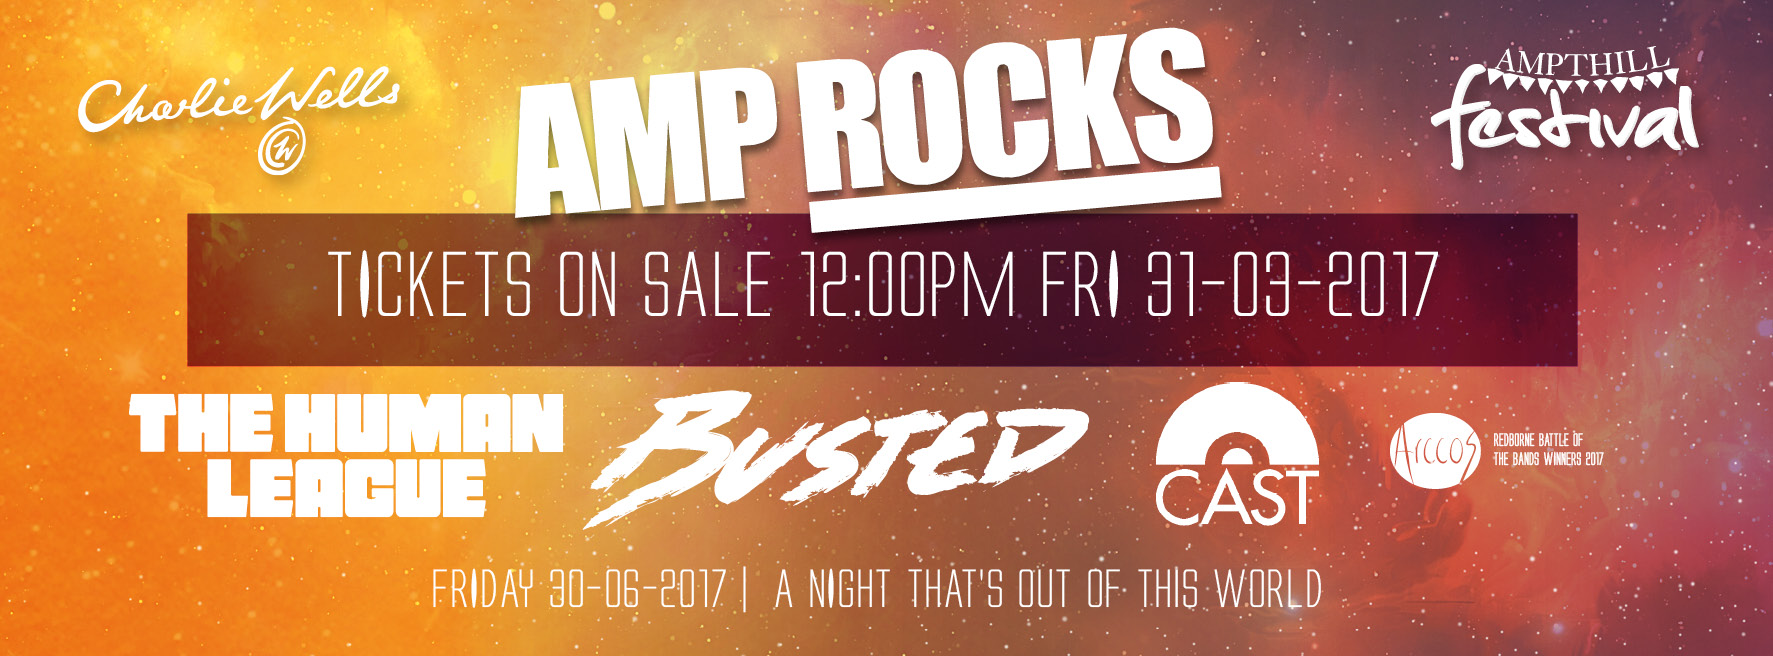 AmpRocks 2017 Ticket Release